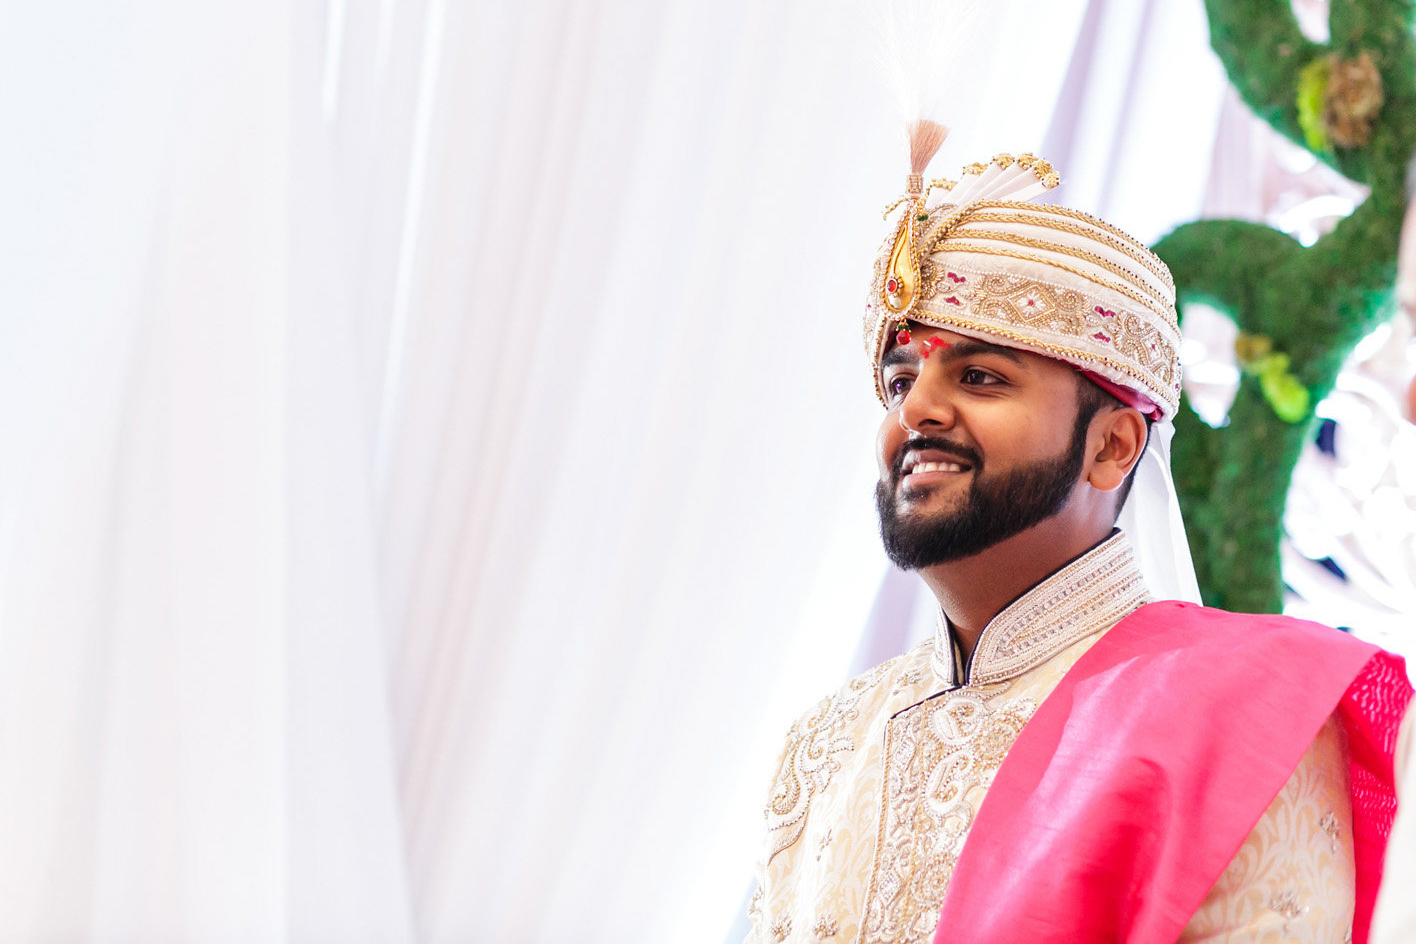 hindu singles in burke Meet british asian hindu singles welcome to our site, join us and meet thousands of asian hindu professionals over 15000 british hindu members.